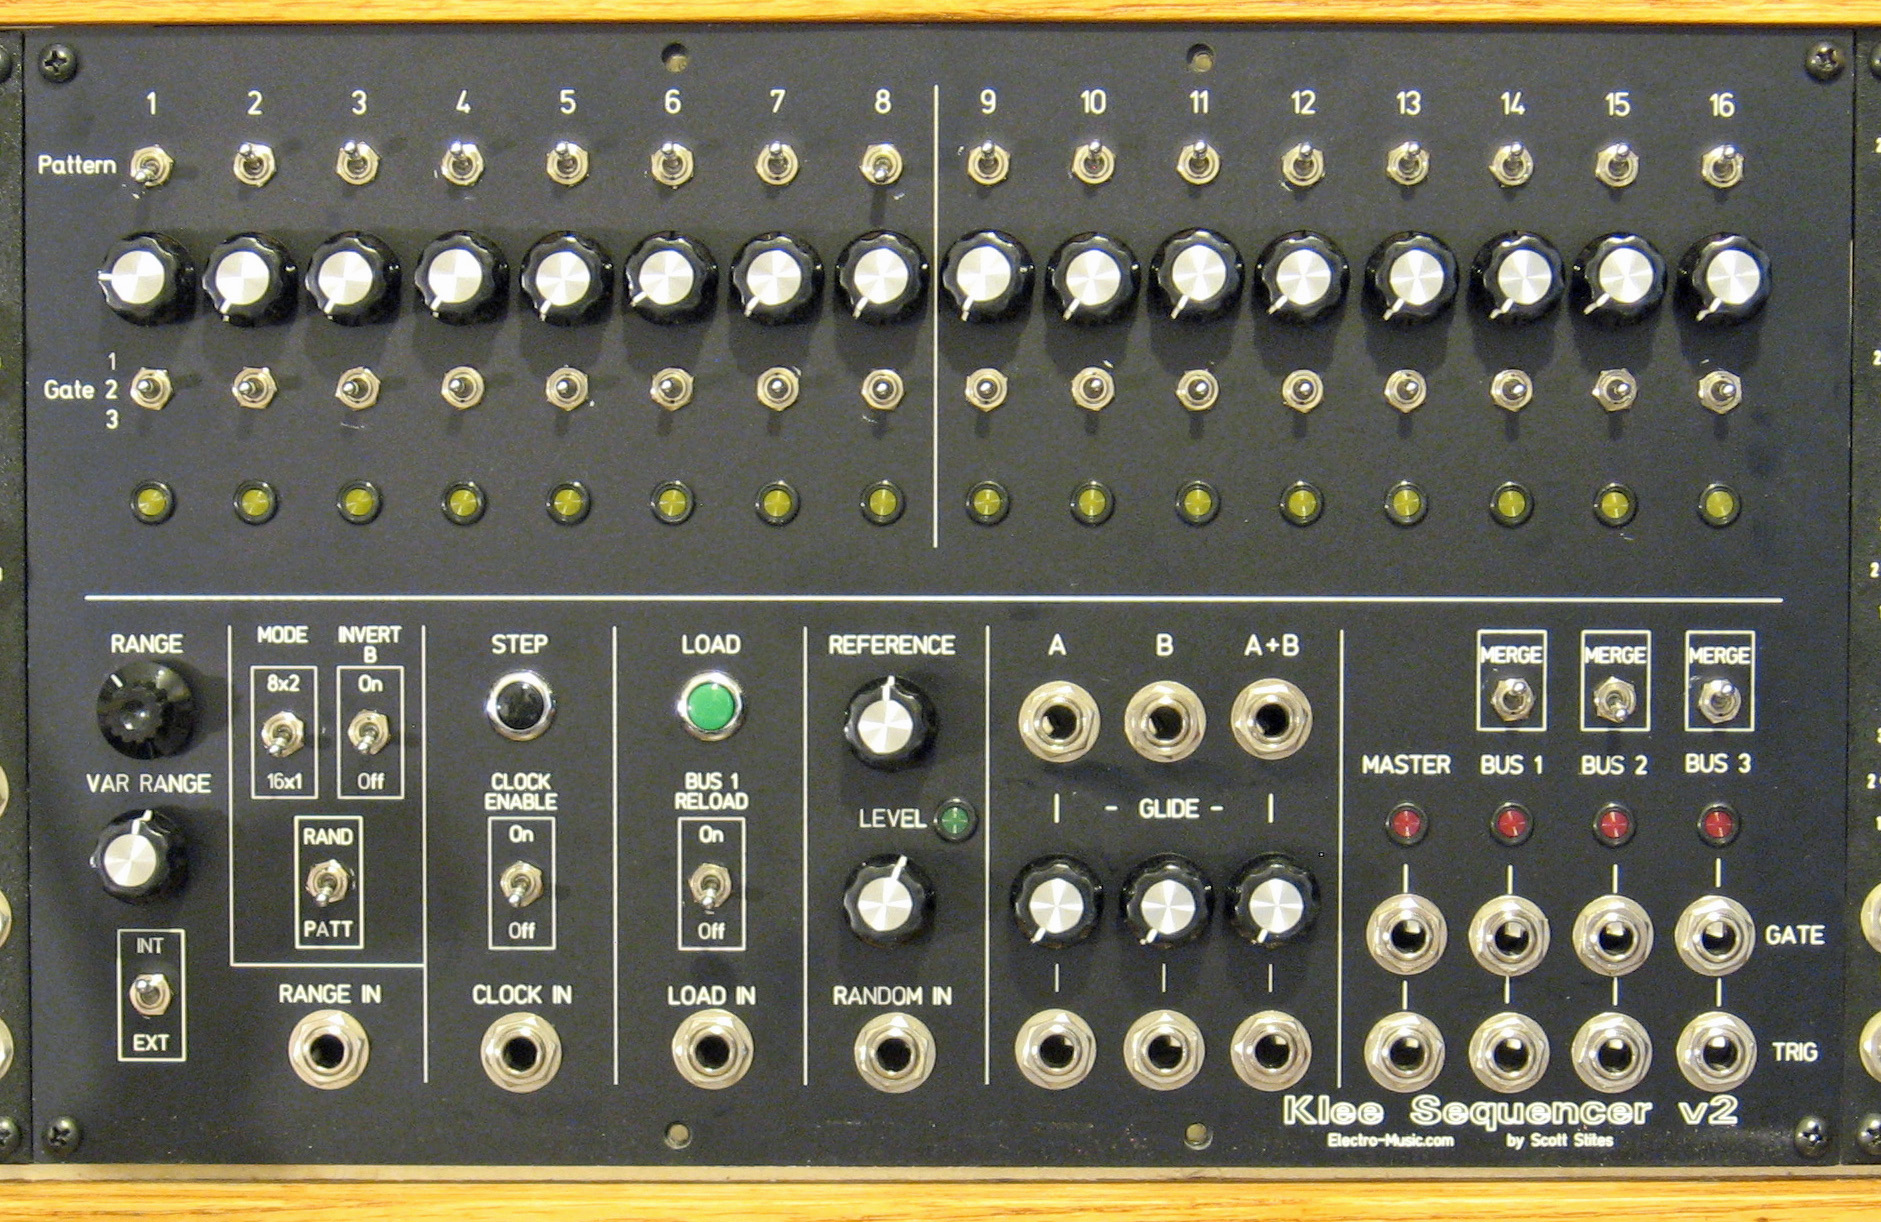 Klee sequencer v2 (2).jpg